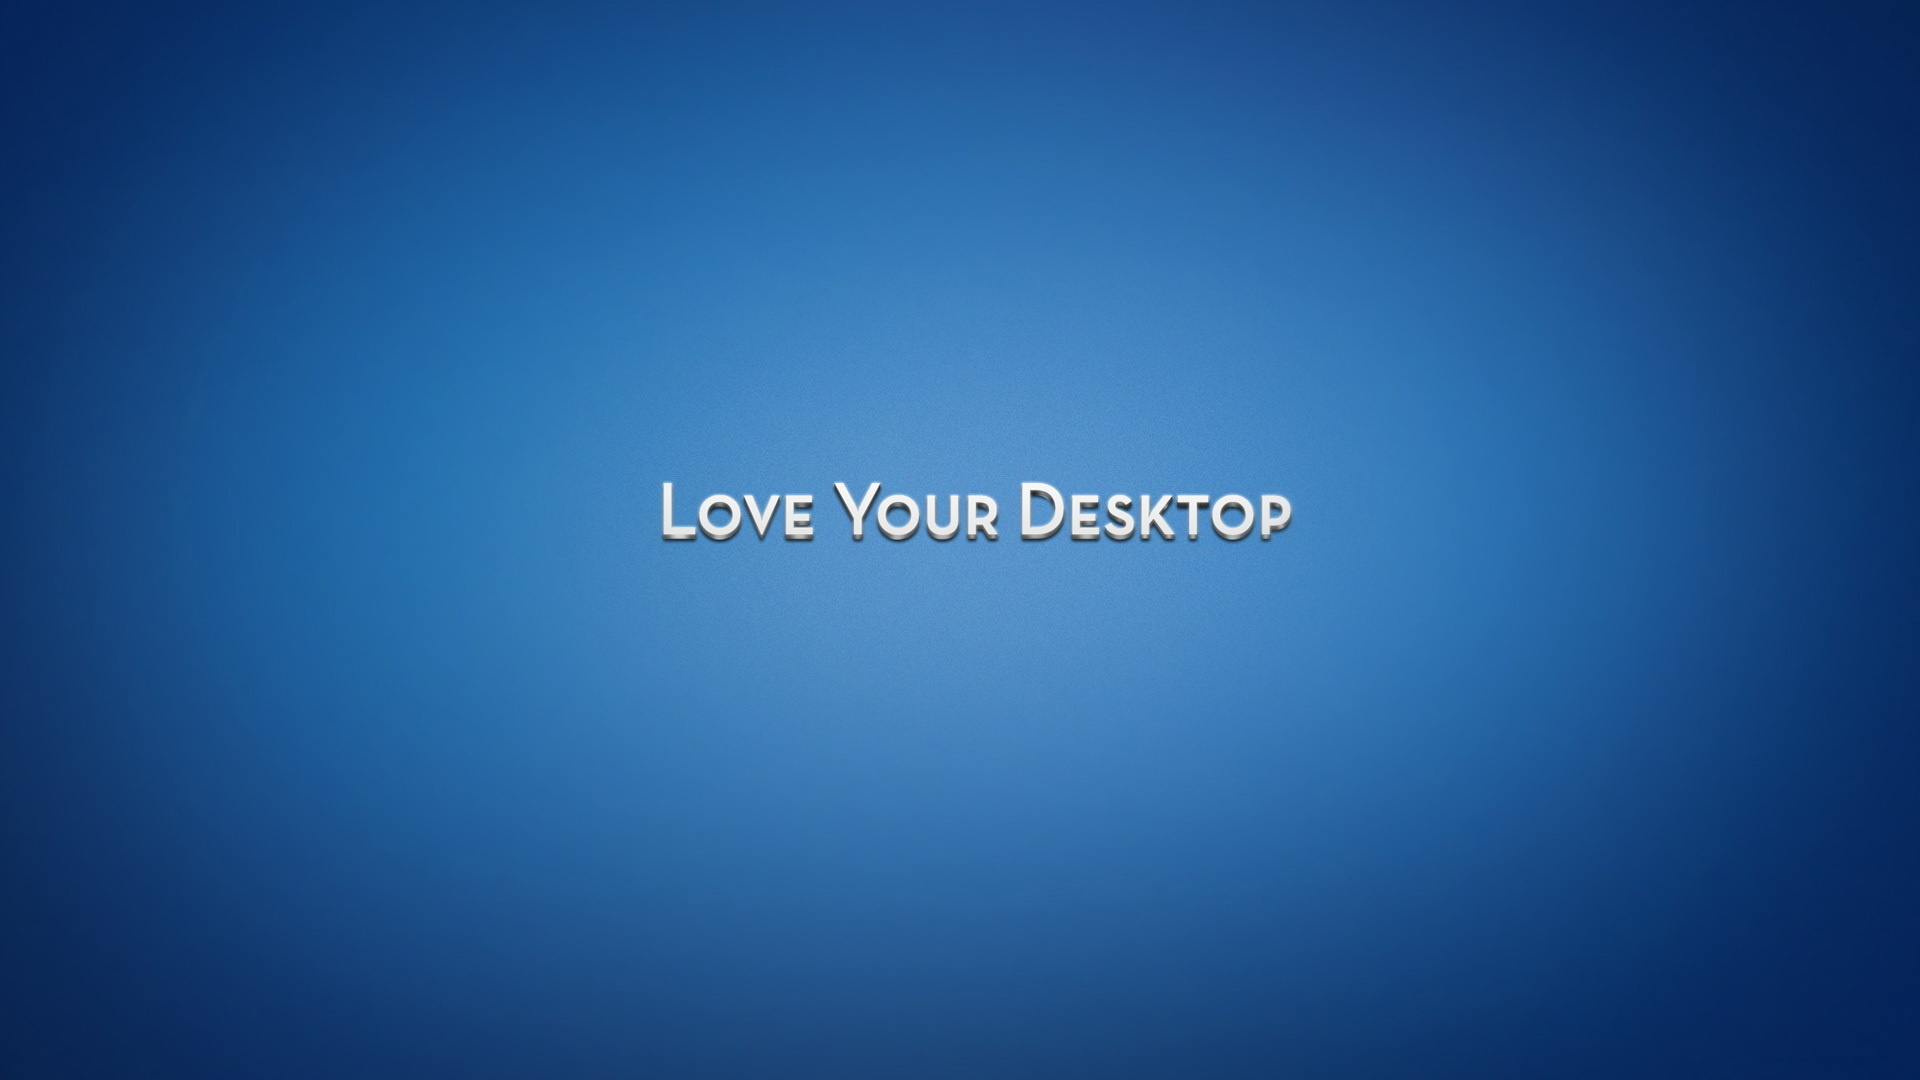 love your desktop 1080p full hd wallpaper 1920x1080